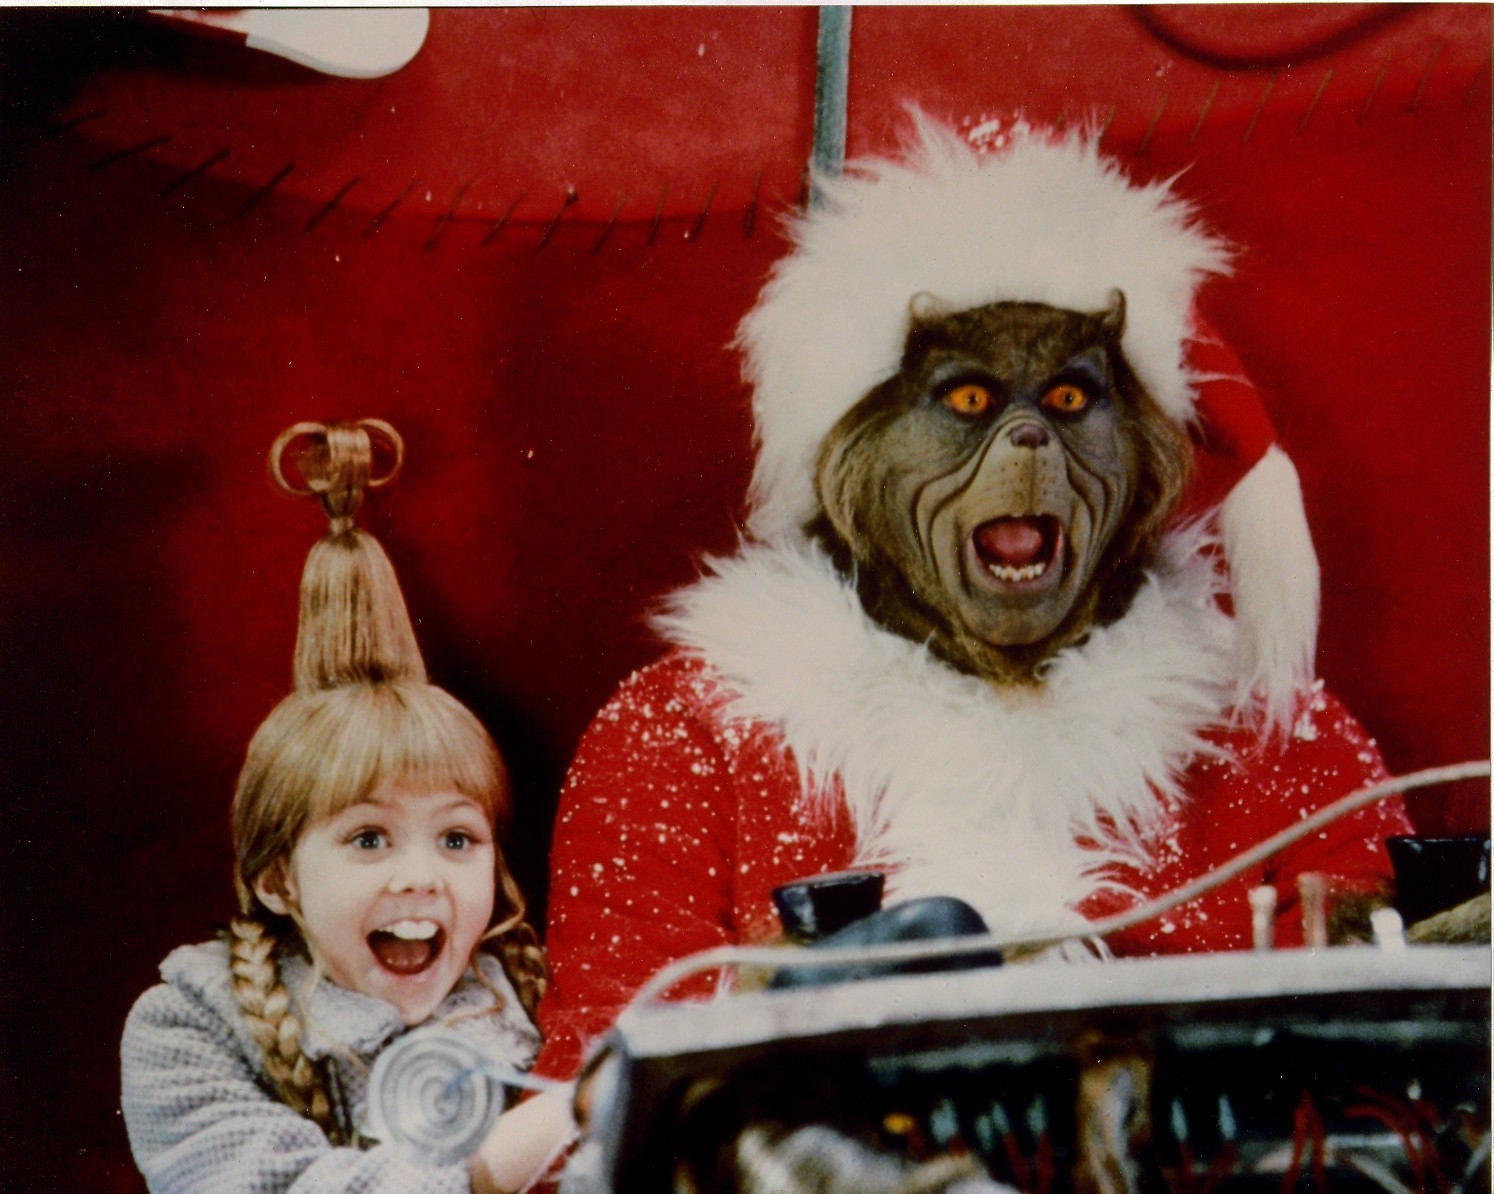 The grinch who stoled christmas movie